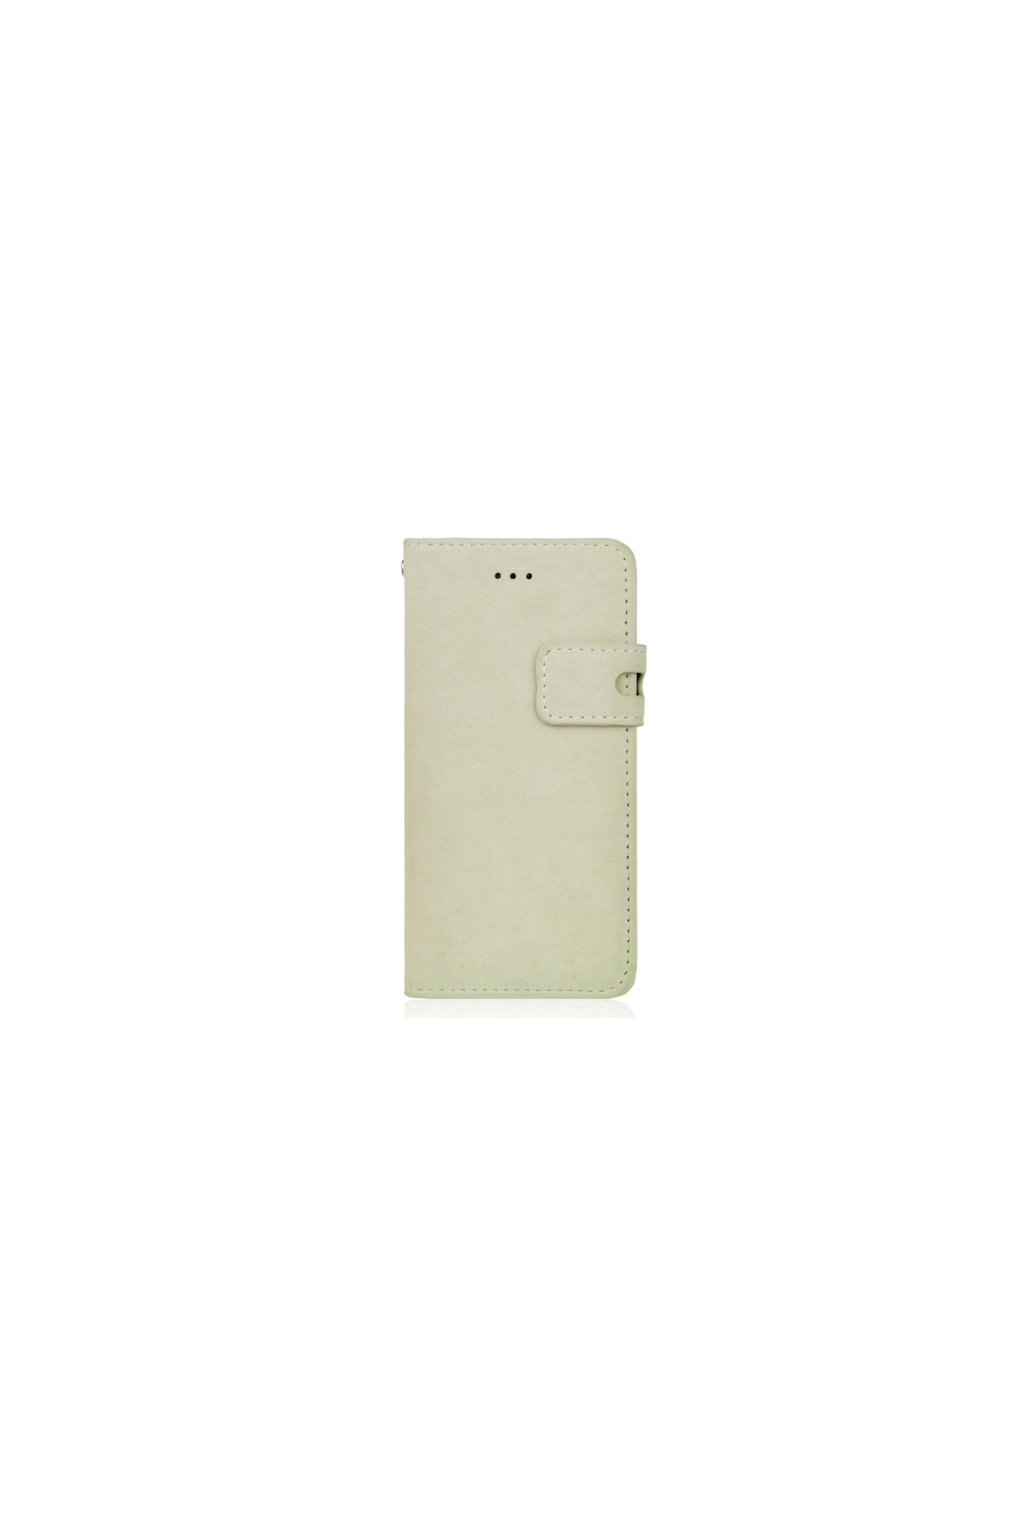 Apple iPhone 6/6S pouzdro flip FROSTED, White